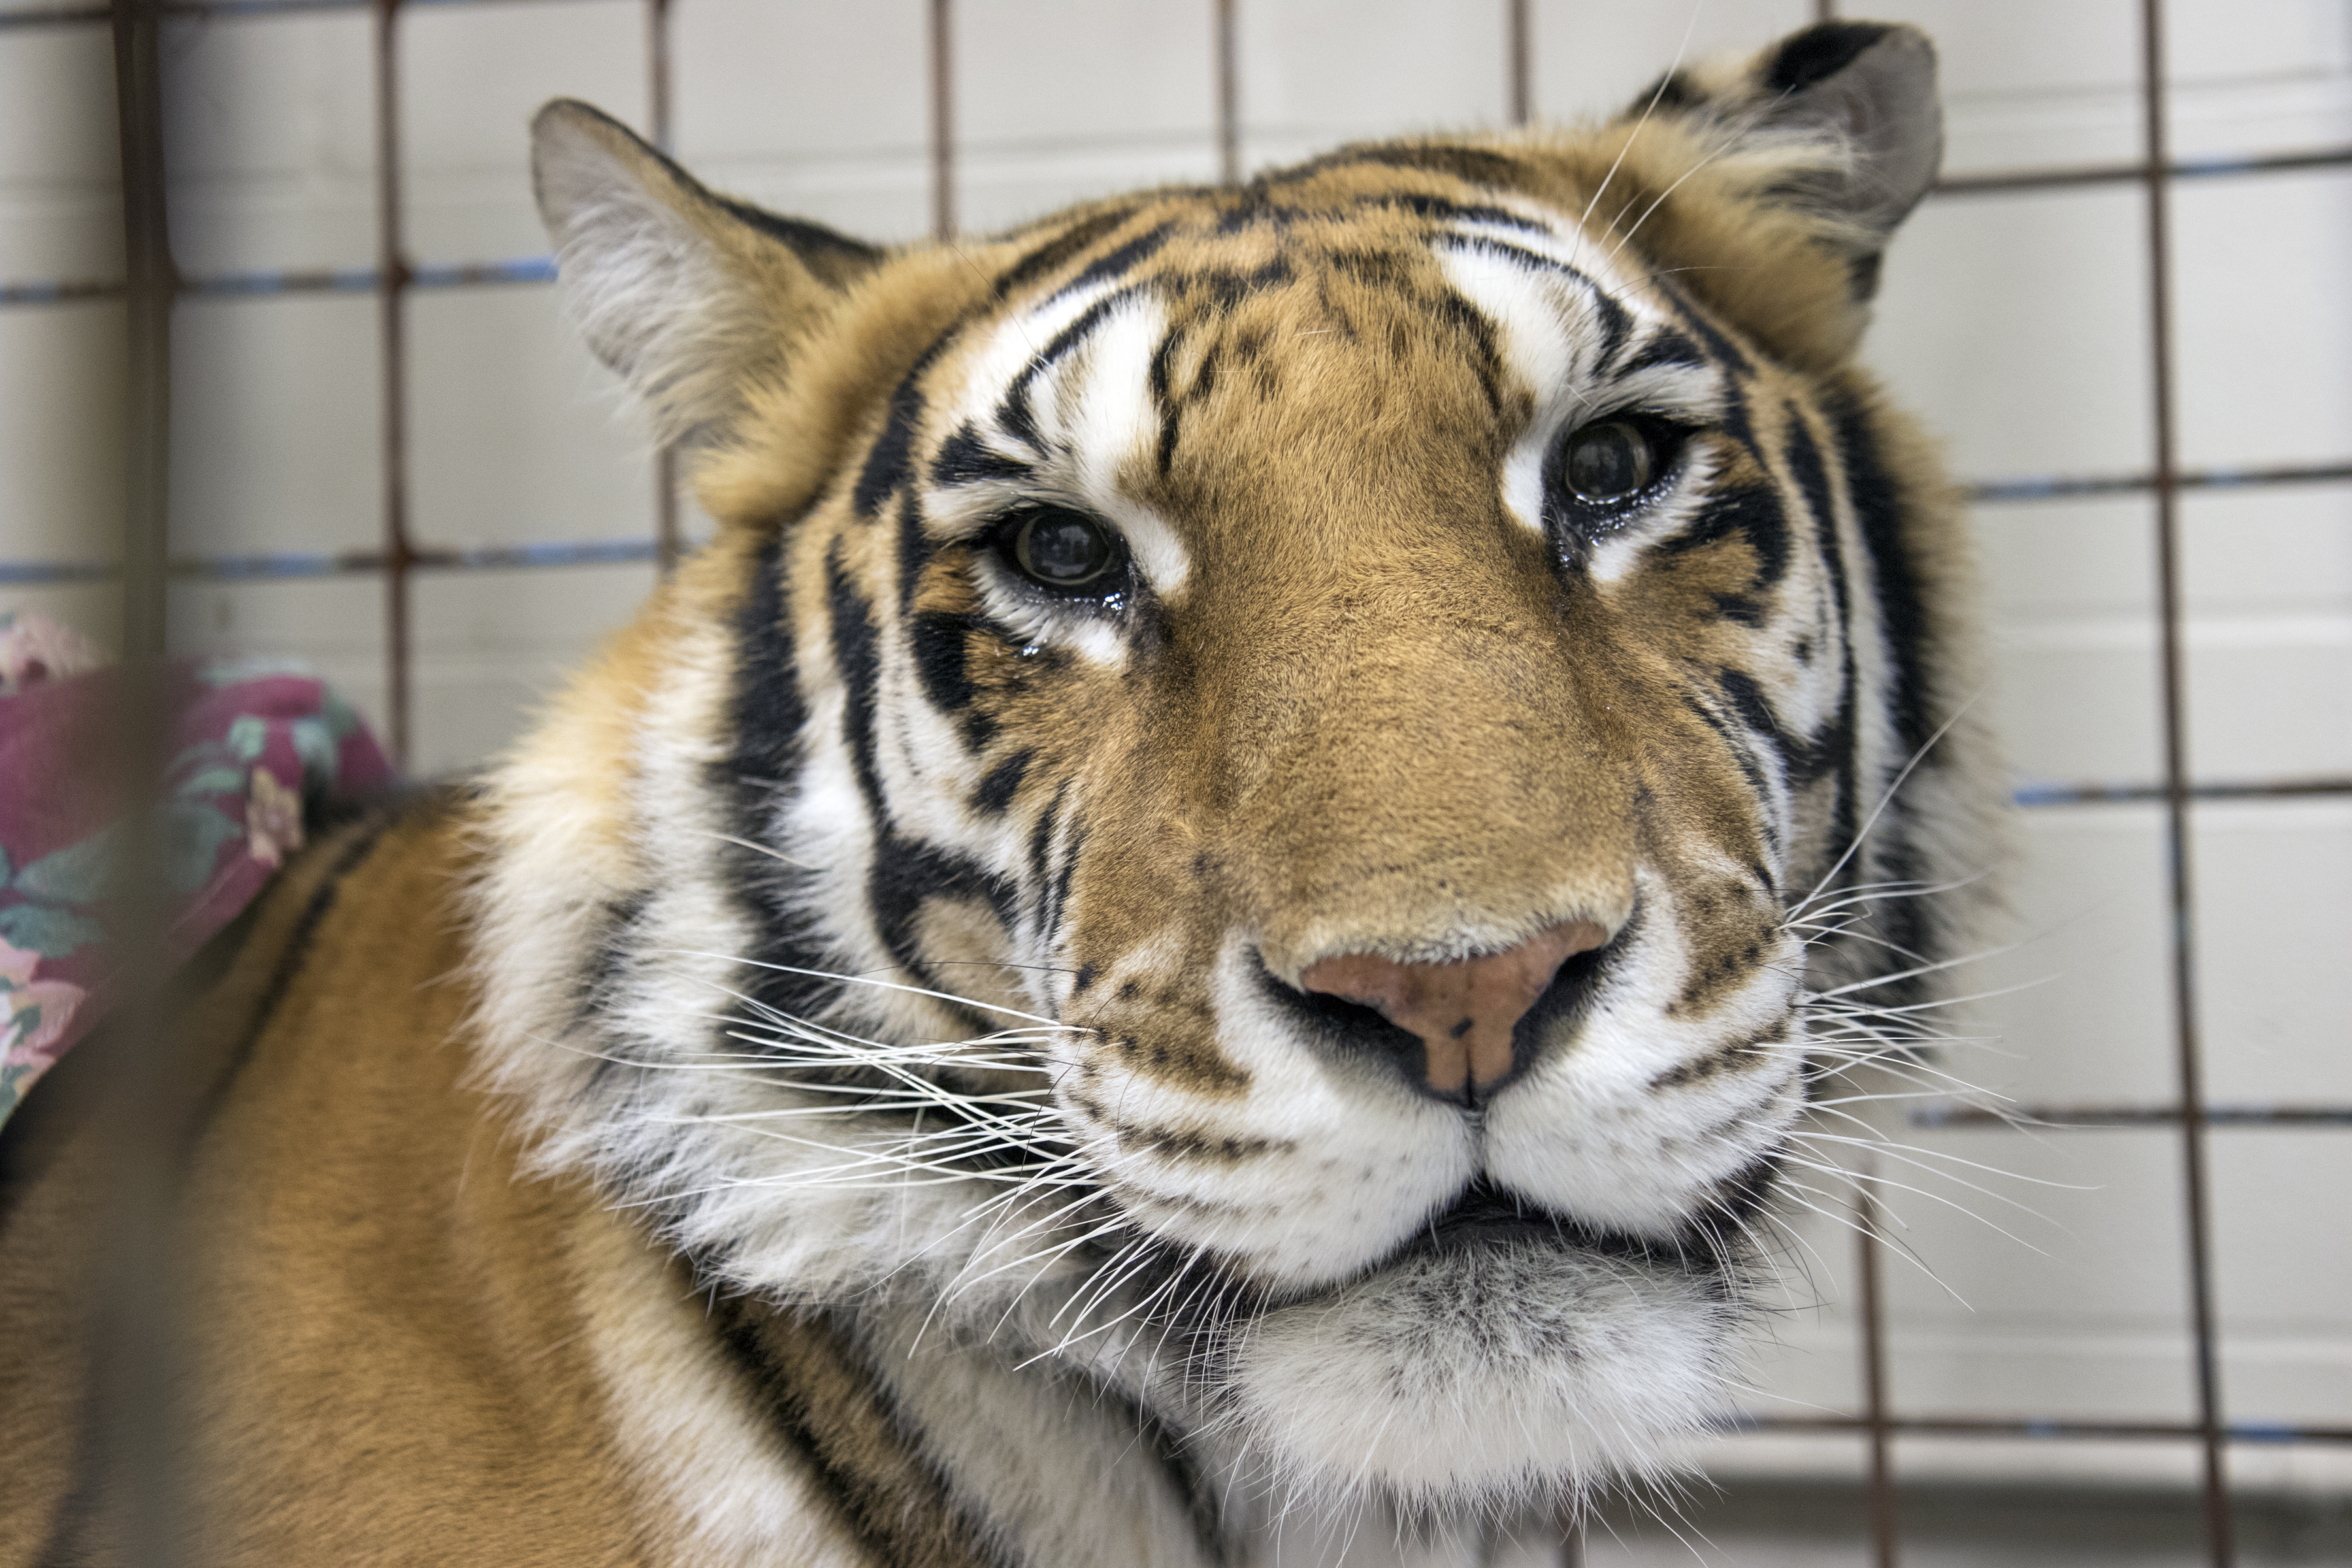 Zahara is recovering well at the animal park.